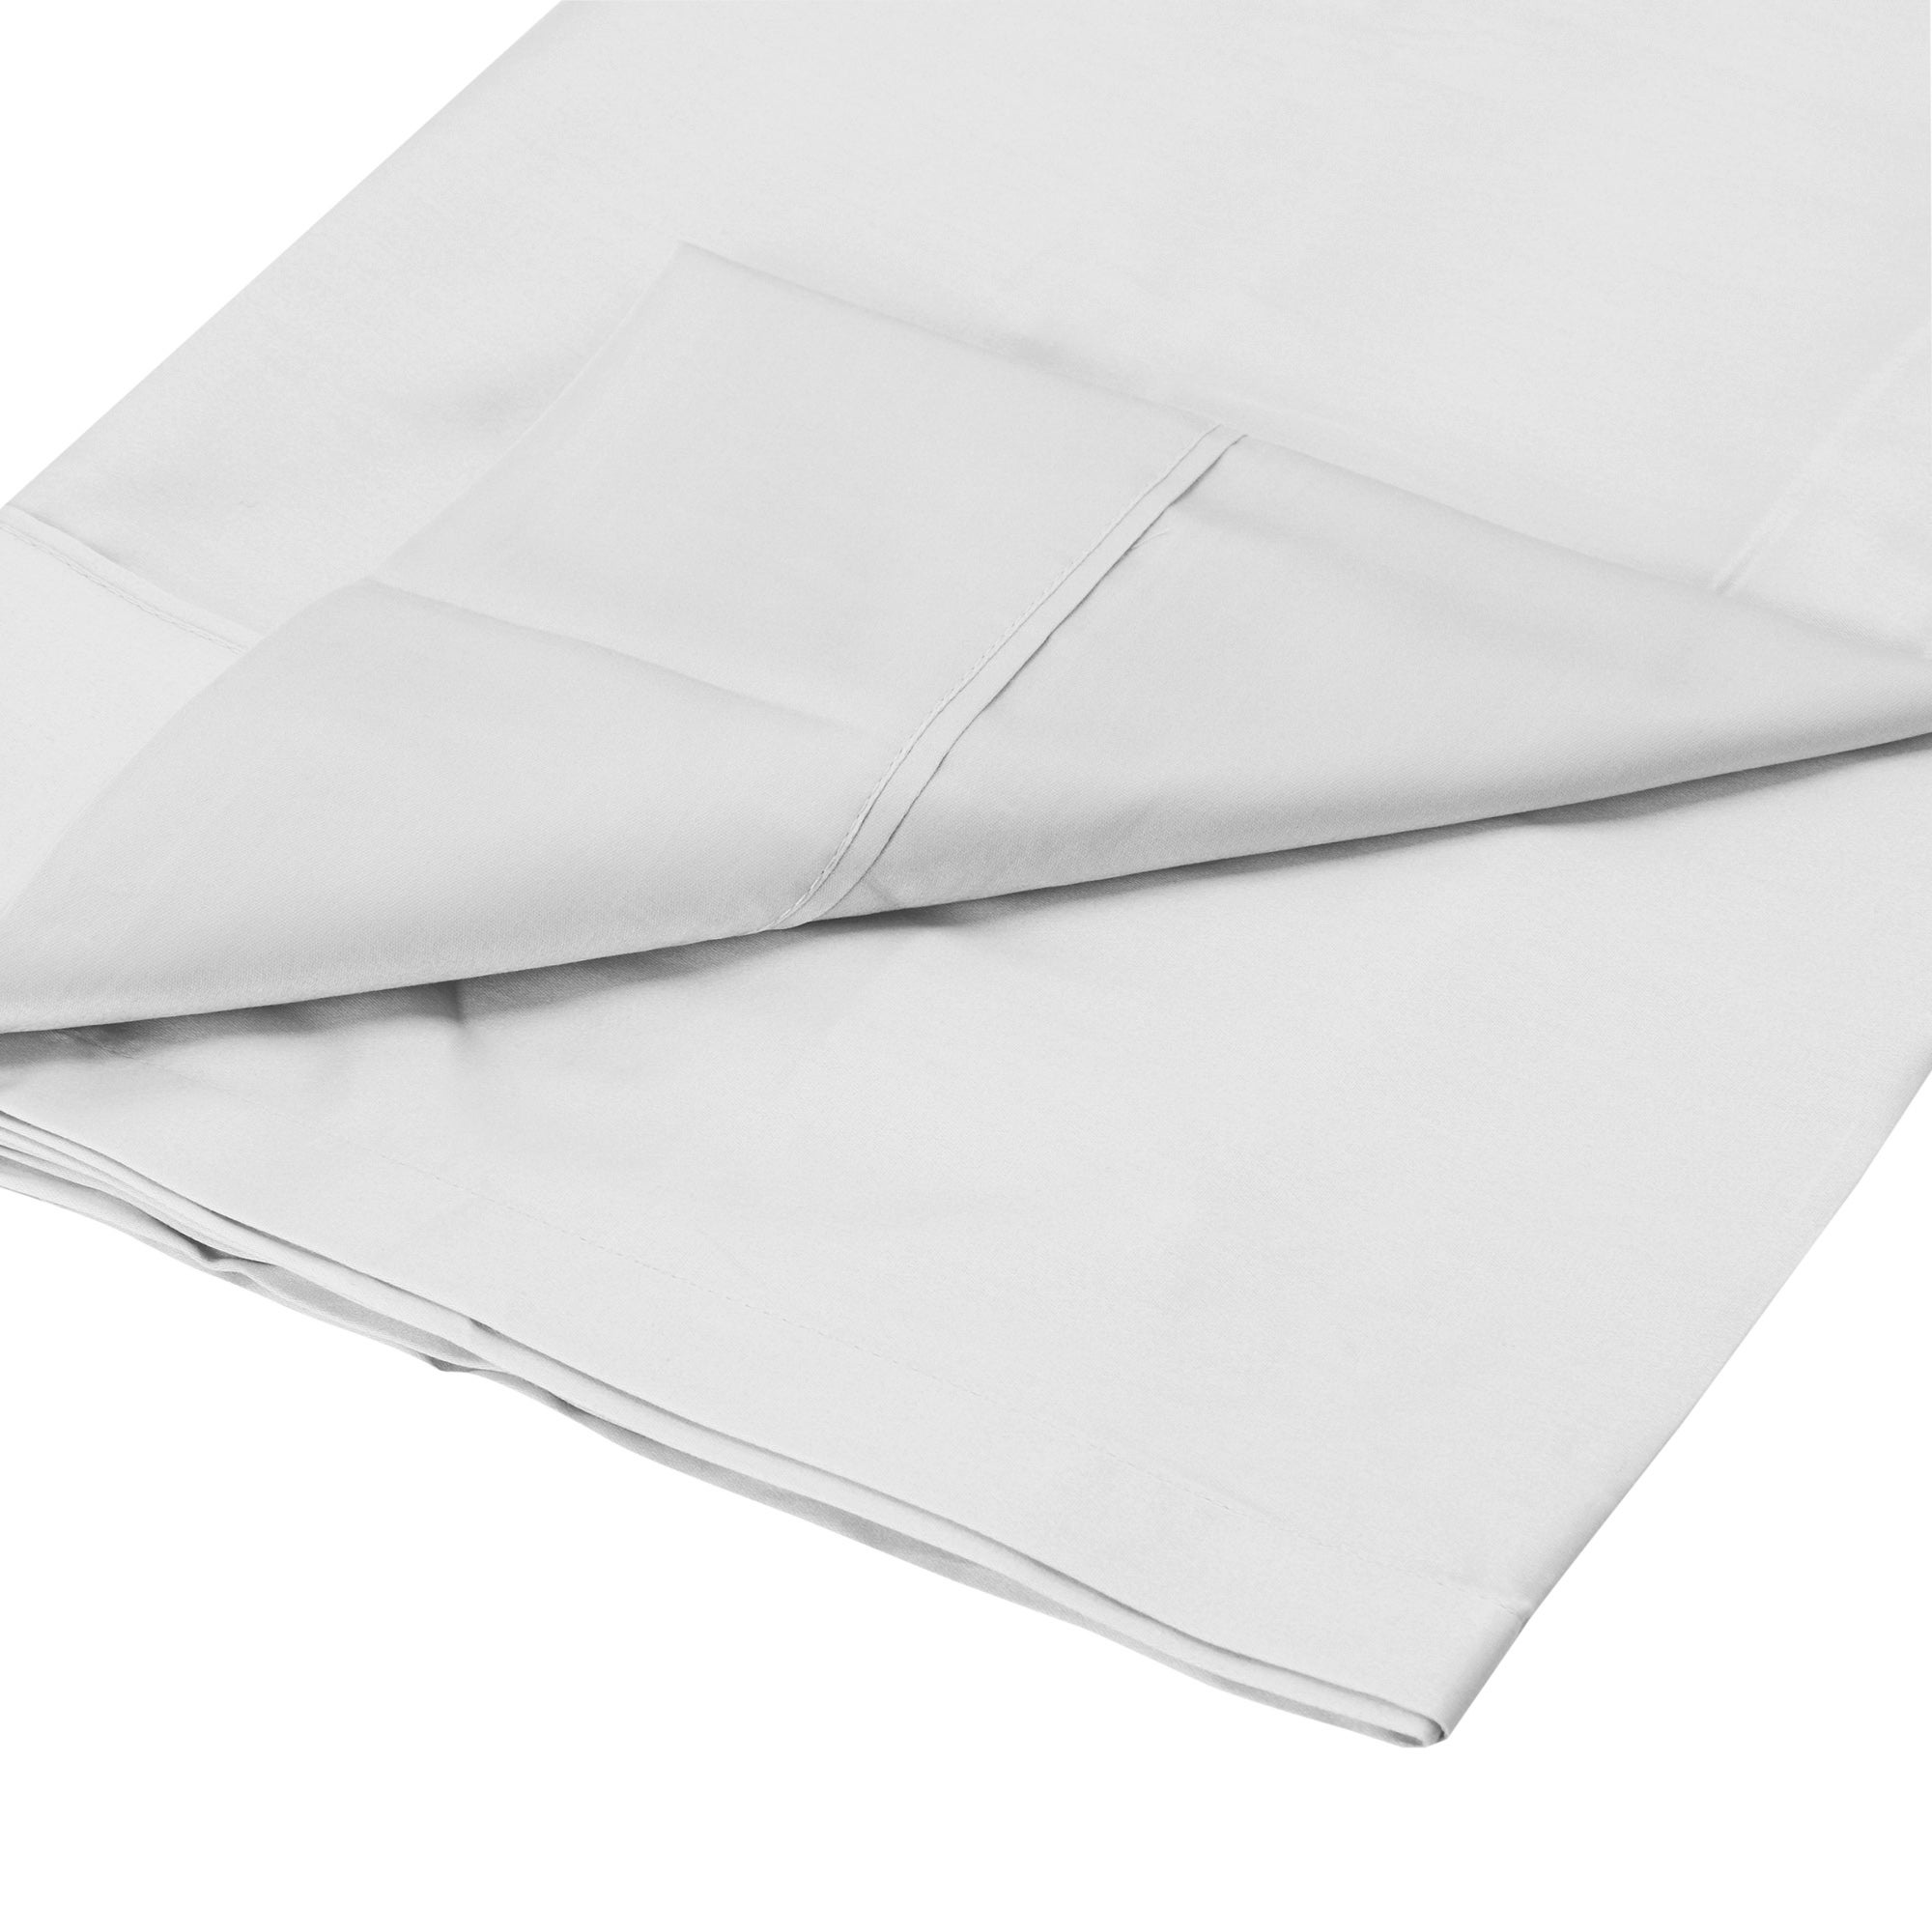 Dorma 350 Thread Count Plain Dye Collection Flat Sheet